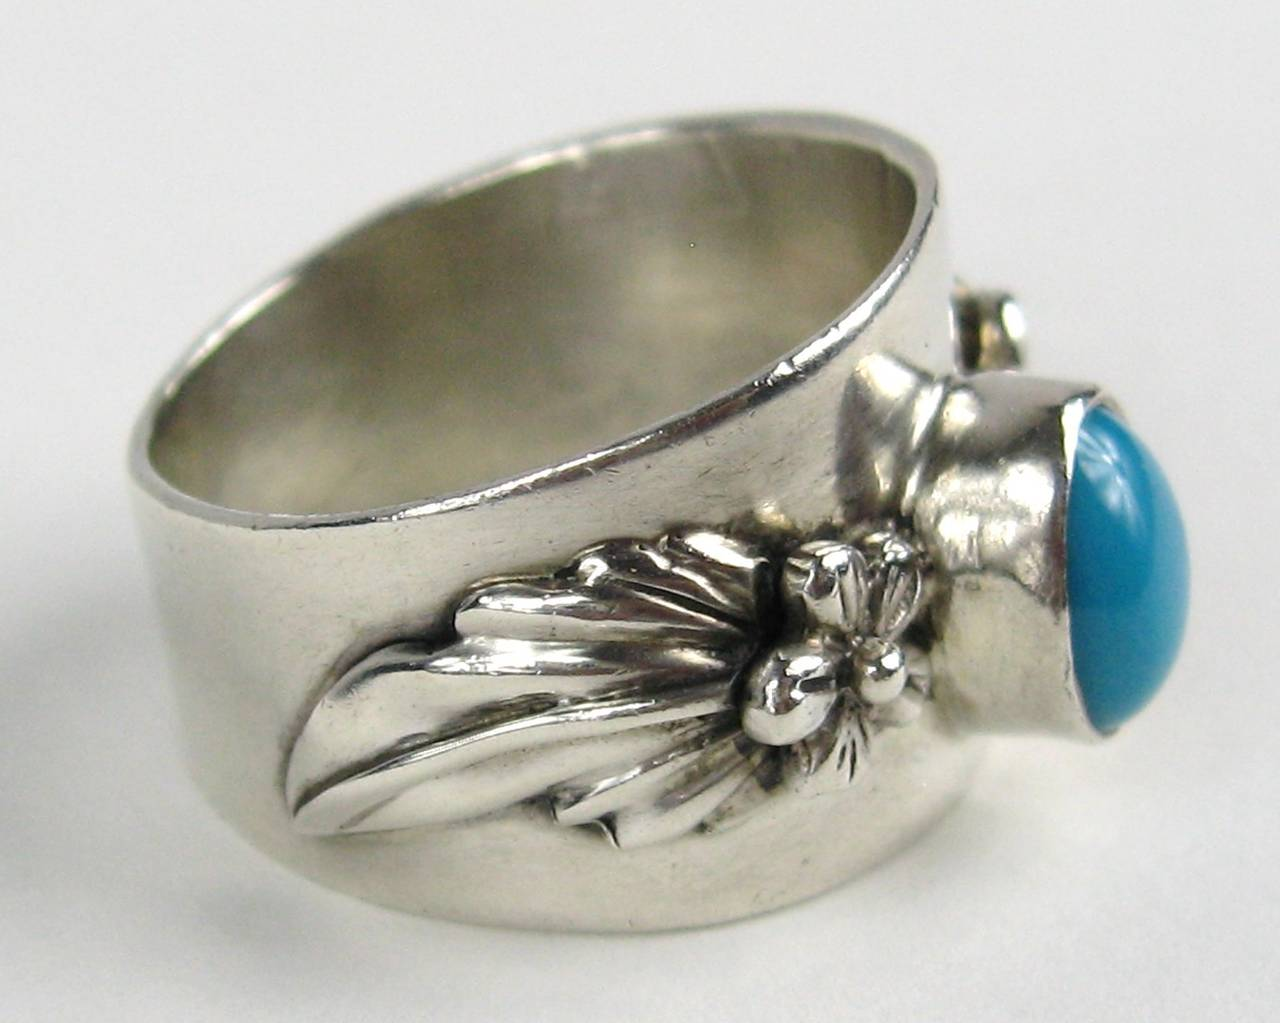 Center Bezel set turquoise stone set in this Carol Felley Ring Size 7.5